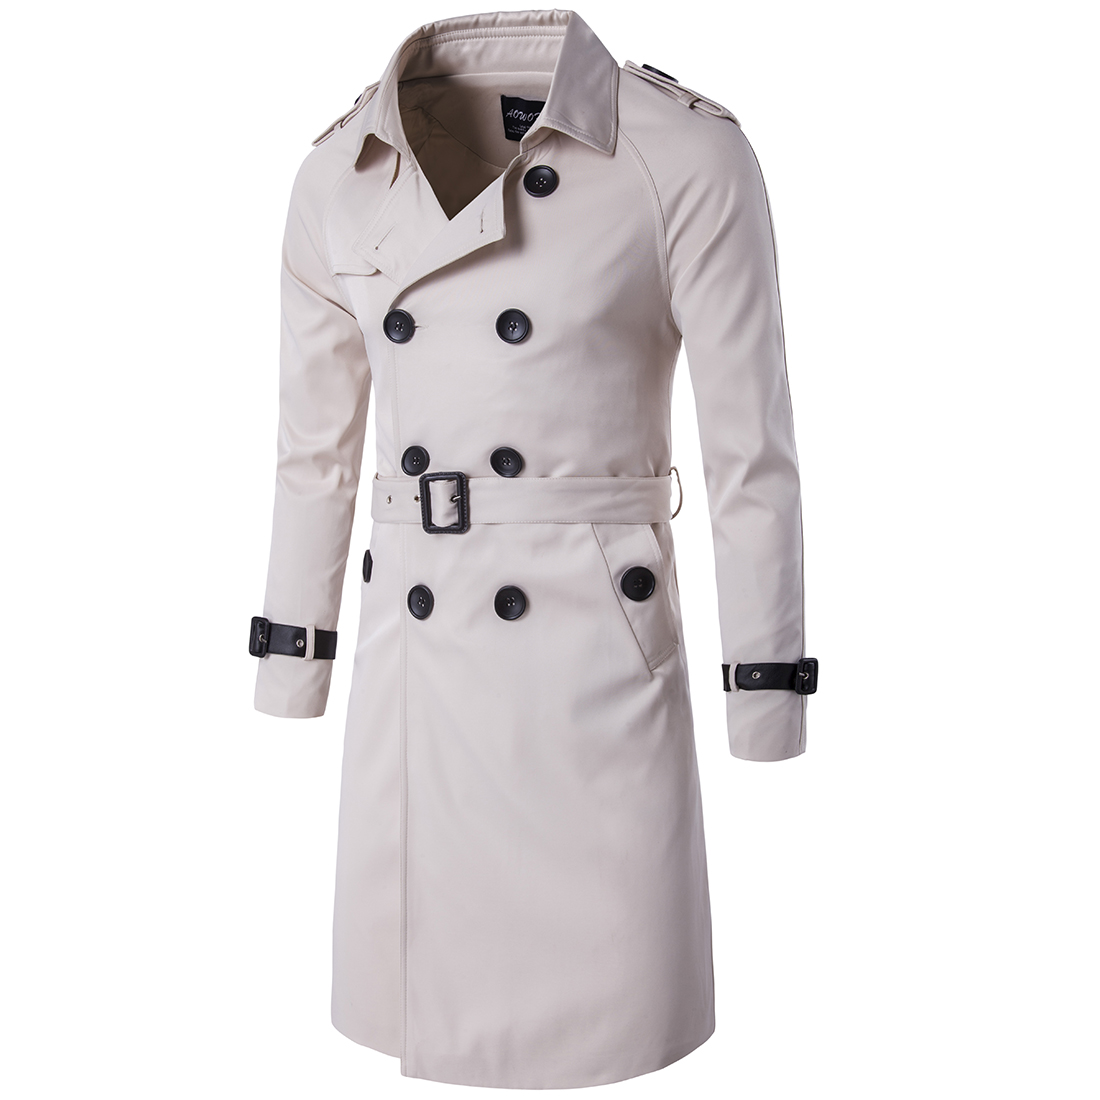 Compare Prices on Mens Long Coats- Online Shopping/Buy Low Price ...